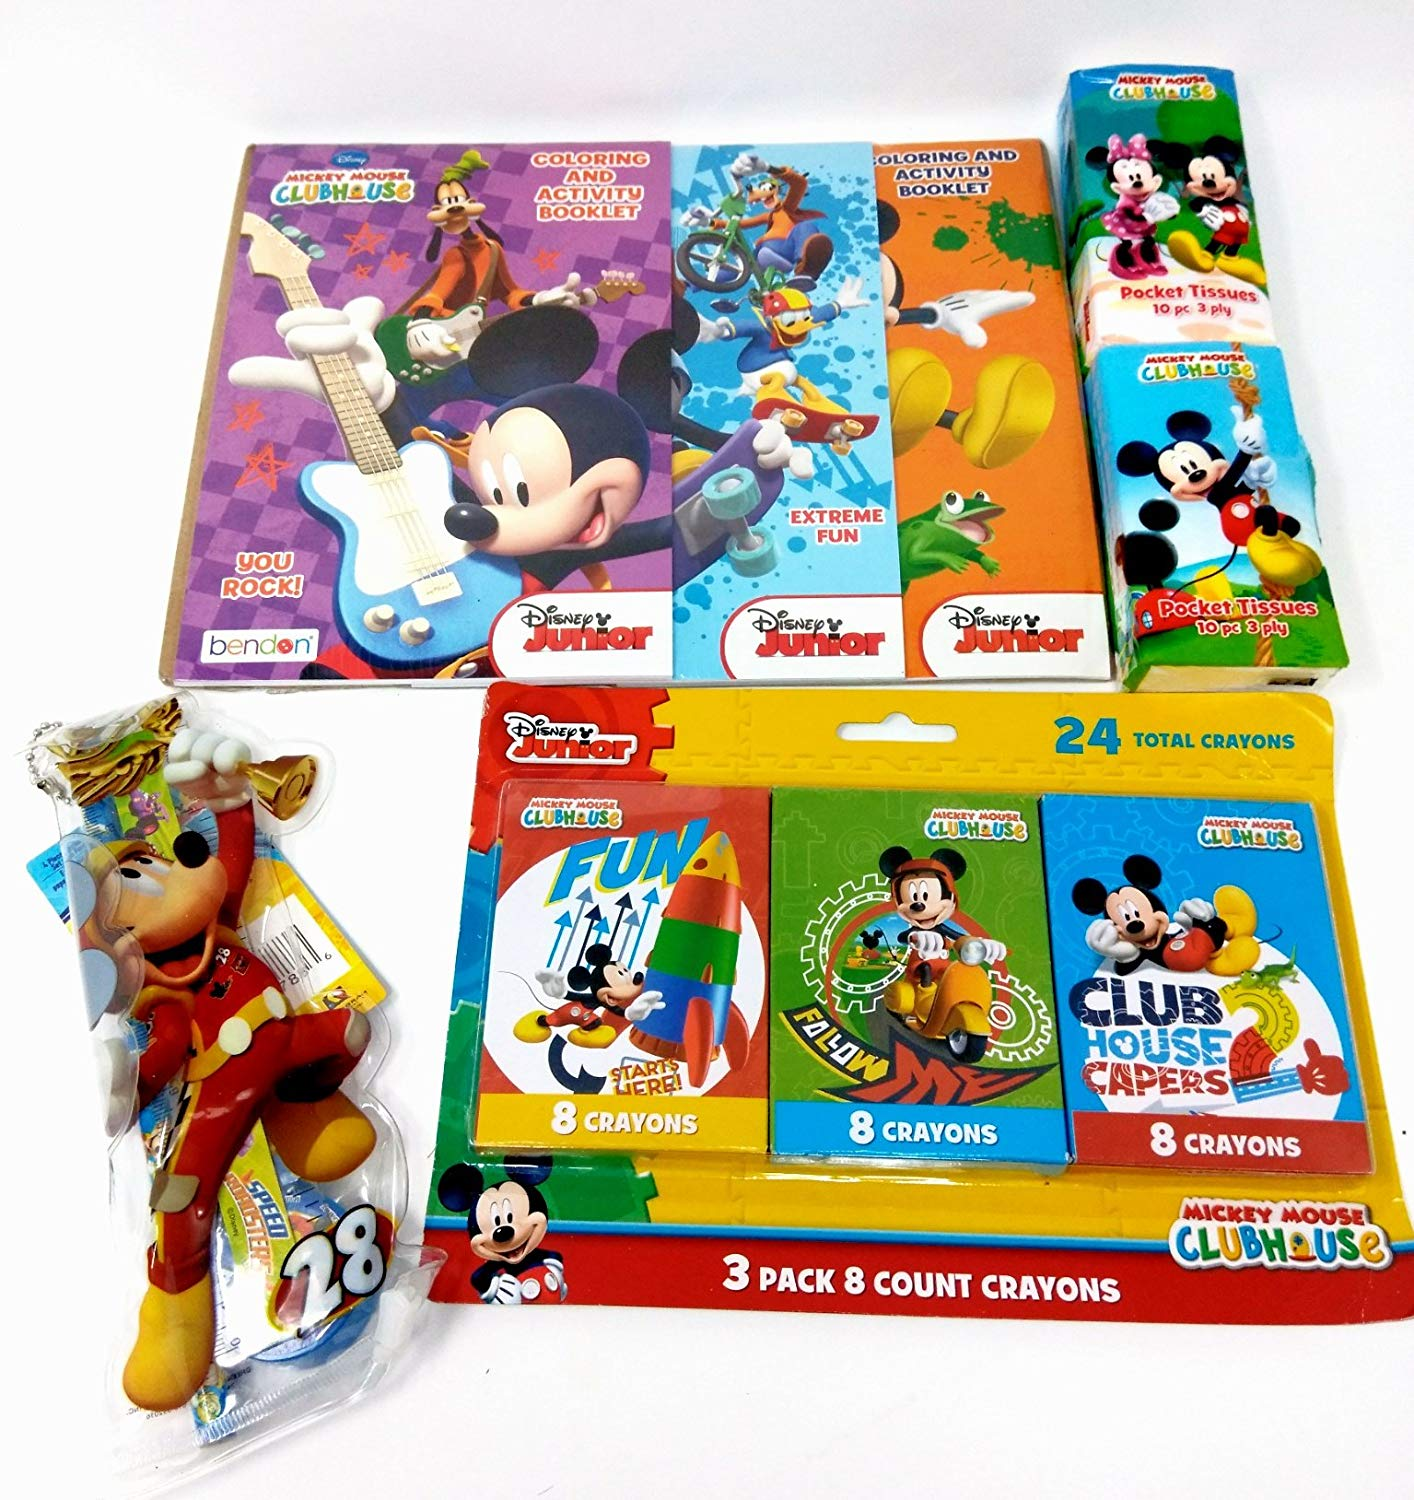 Back to School Toddler Pre-school Elementary School Supplies Tissues (2) Crayon 24 Pack Coloring Book & Activity Book Pouch Pencil Eraser & Pencil Sharpener Goofy Mickey Mouse Donald